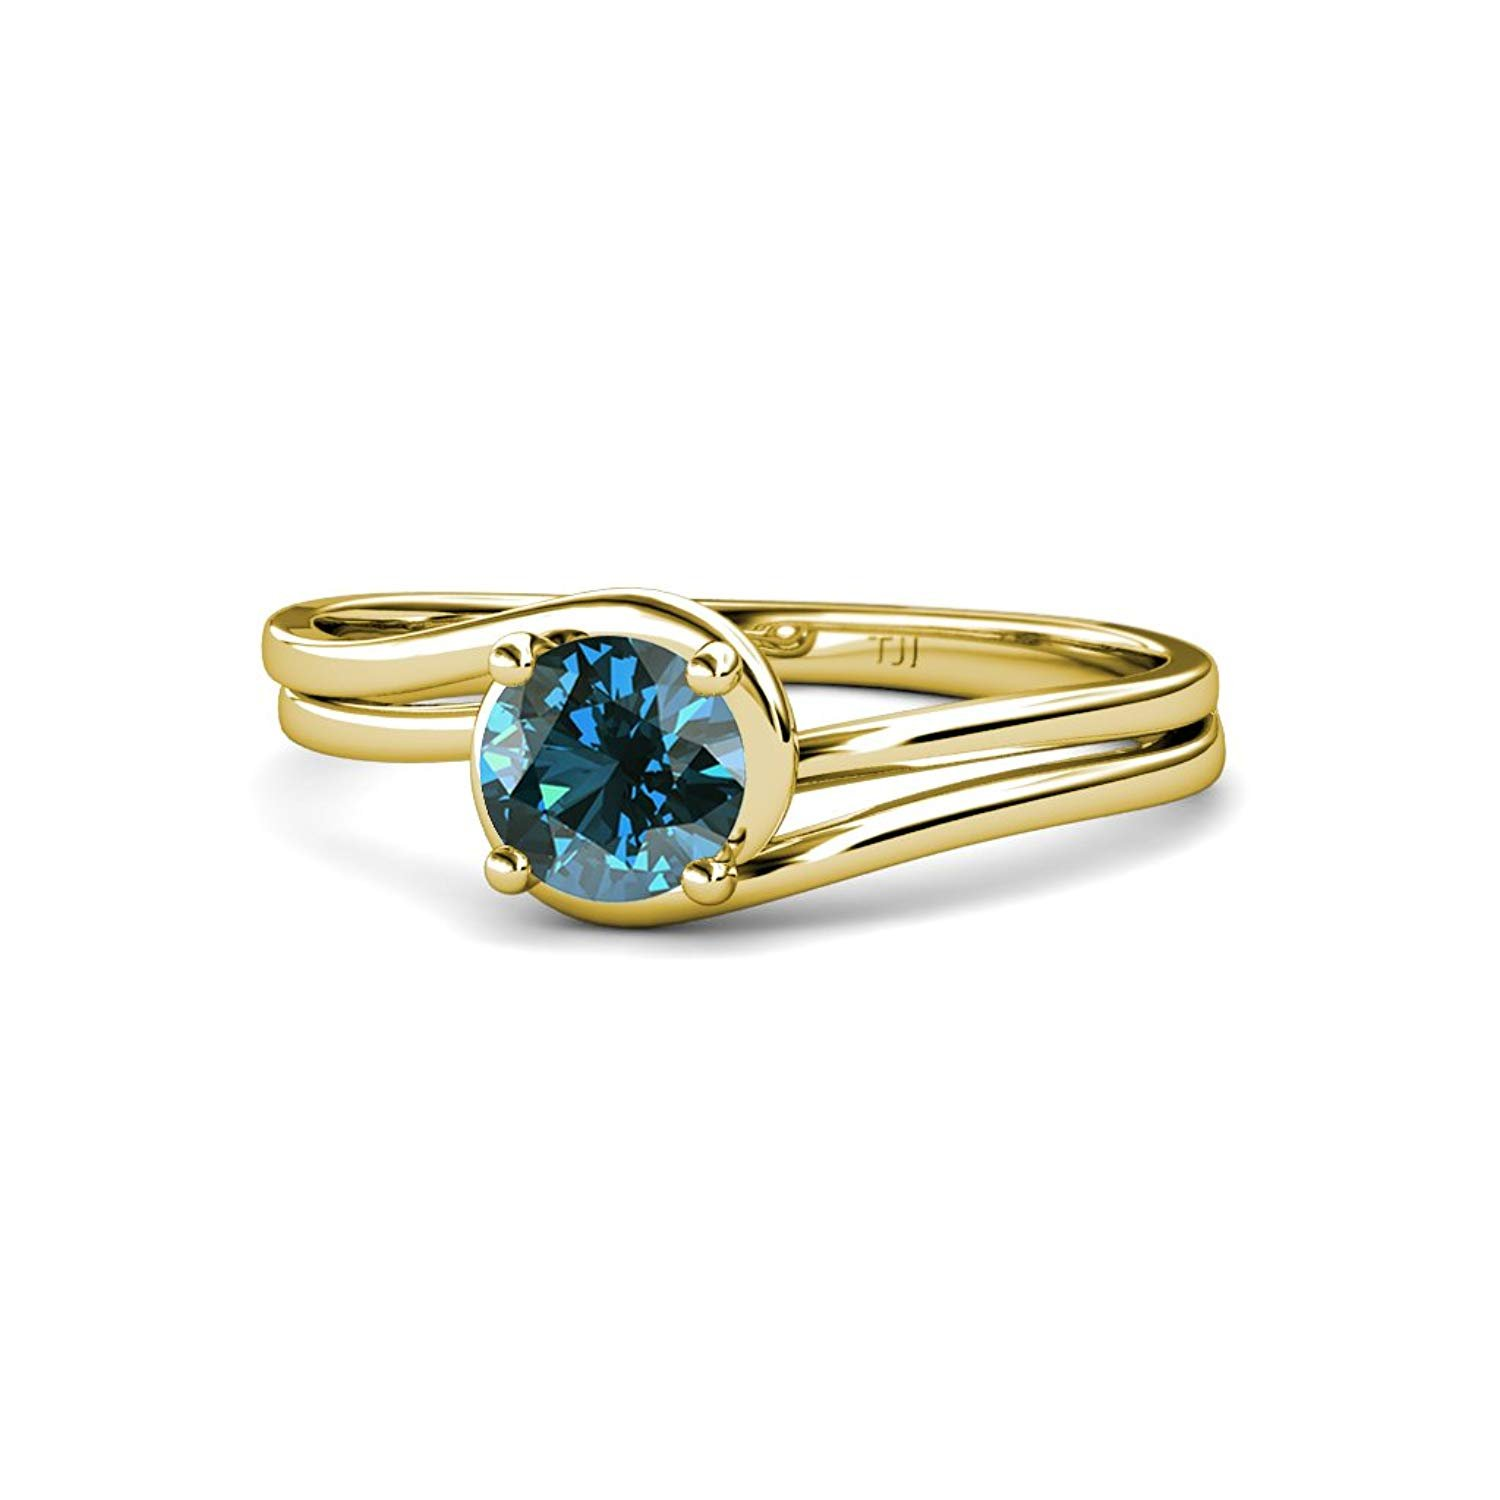 Blue Diamond Bypass Solitaire Engagement Ring 0.63 ct in 14K Yellow Gold.size 8.25 by TriJewels